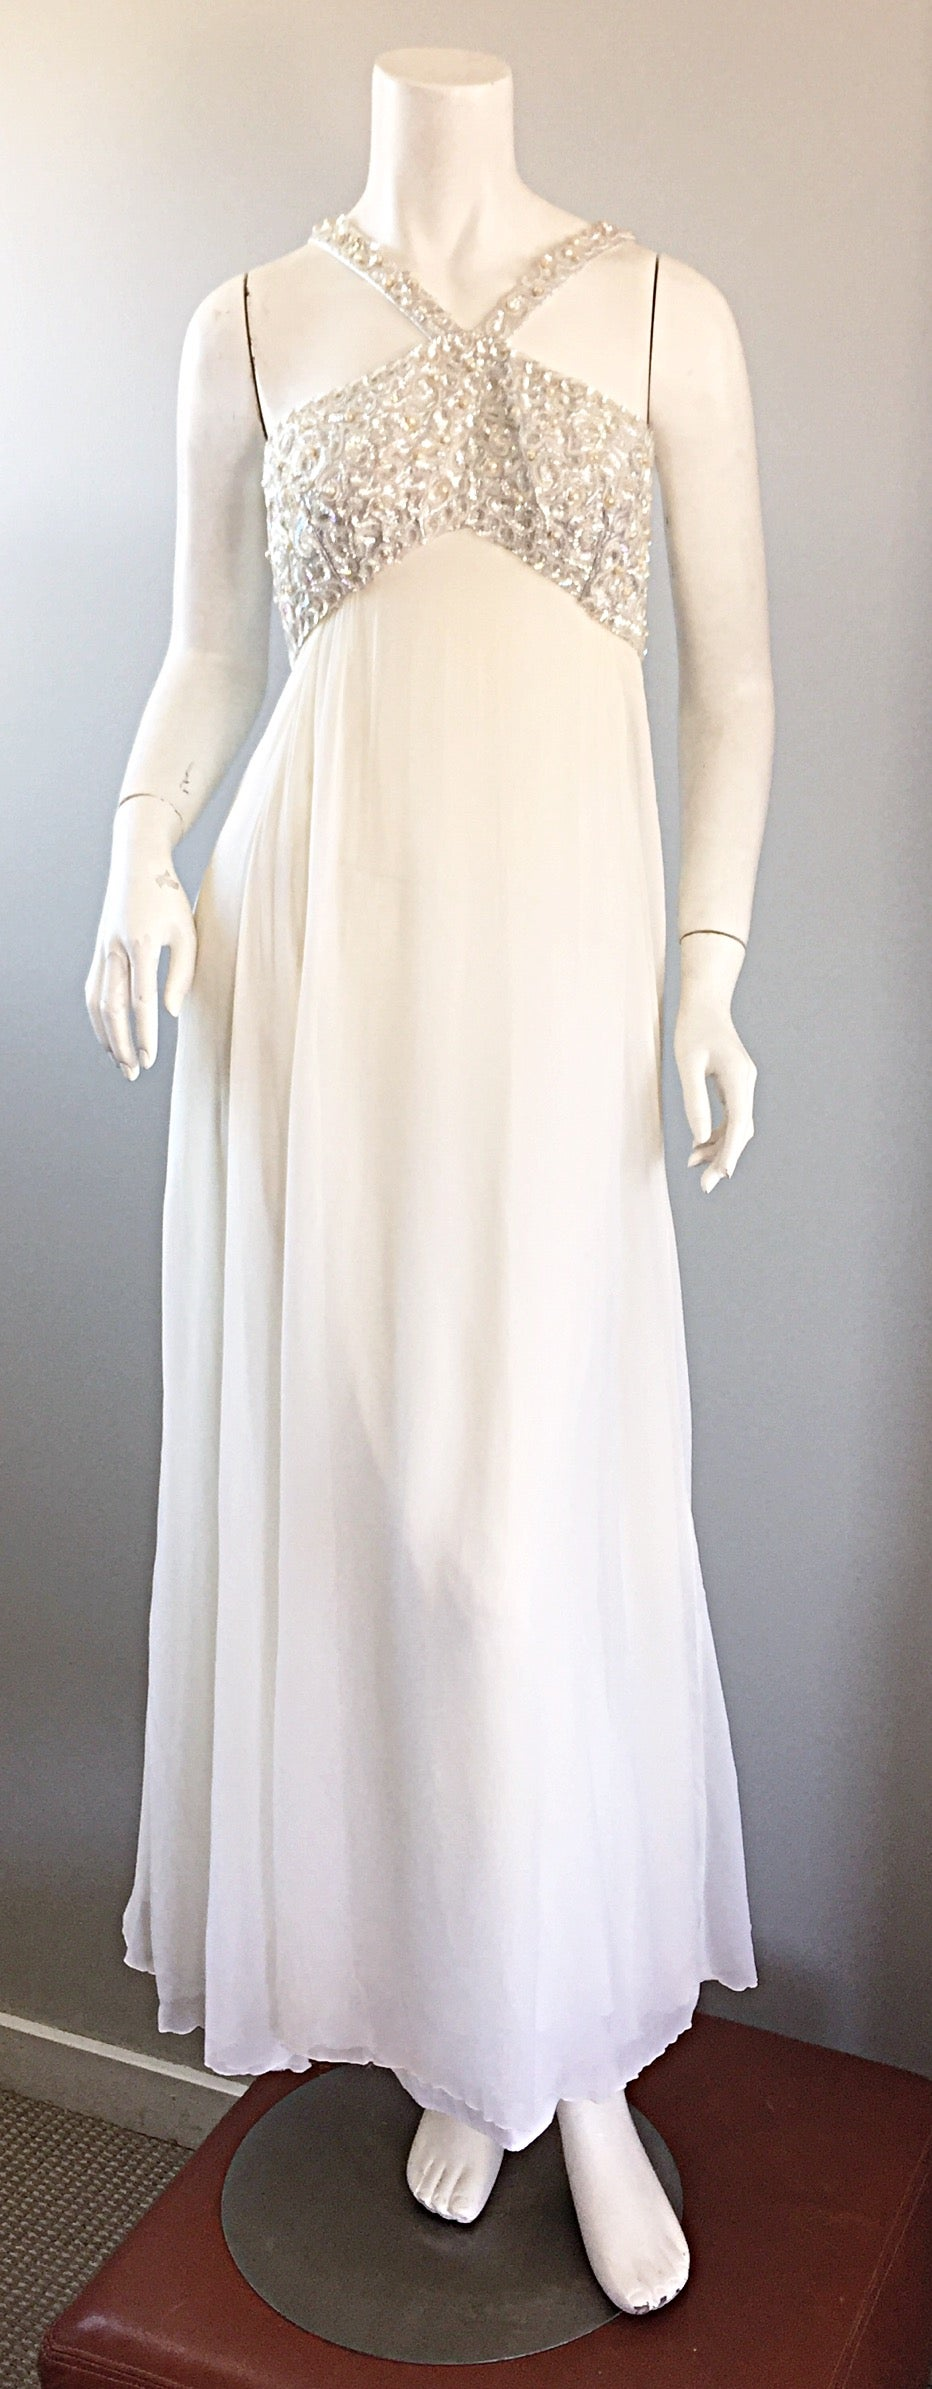 8ea3306cd398 Ethereal Emma Domb 1960s White Chiffon Sequins + Pearls 60s Empire Waist  Gown For Sale at 1stdibs